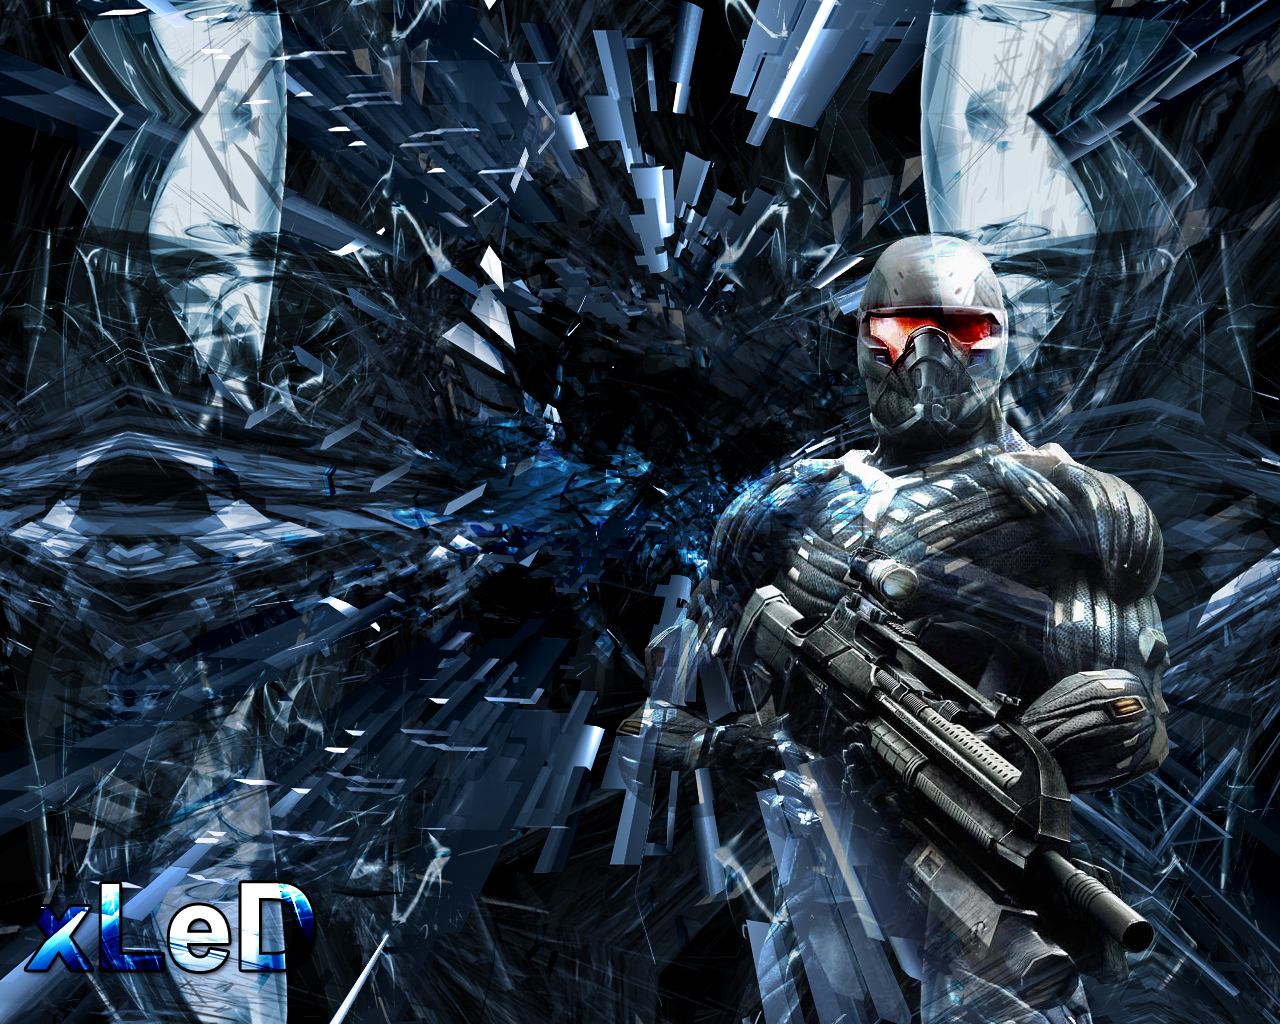 crysis wallpaper by xled on deviantart